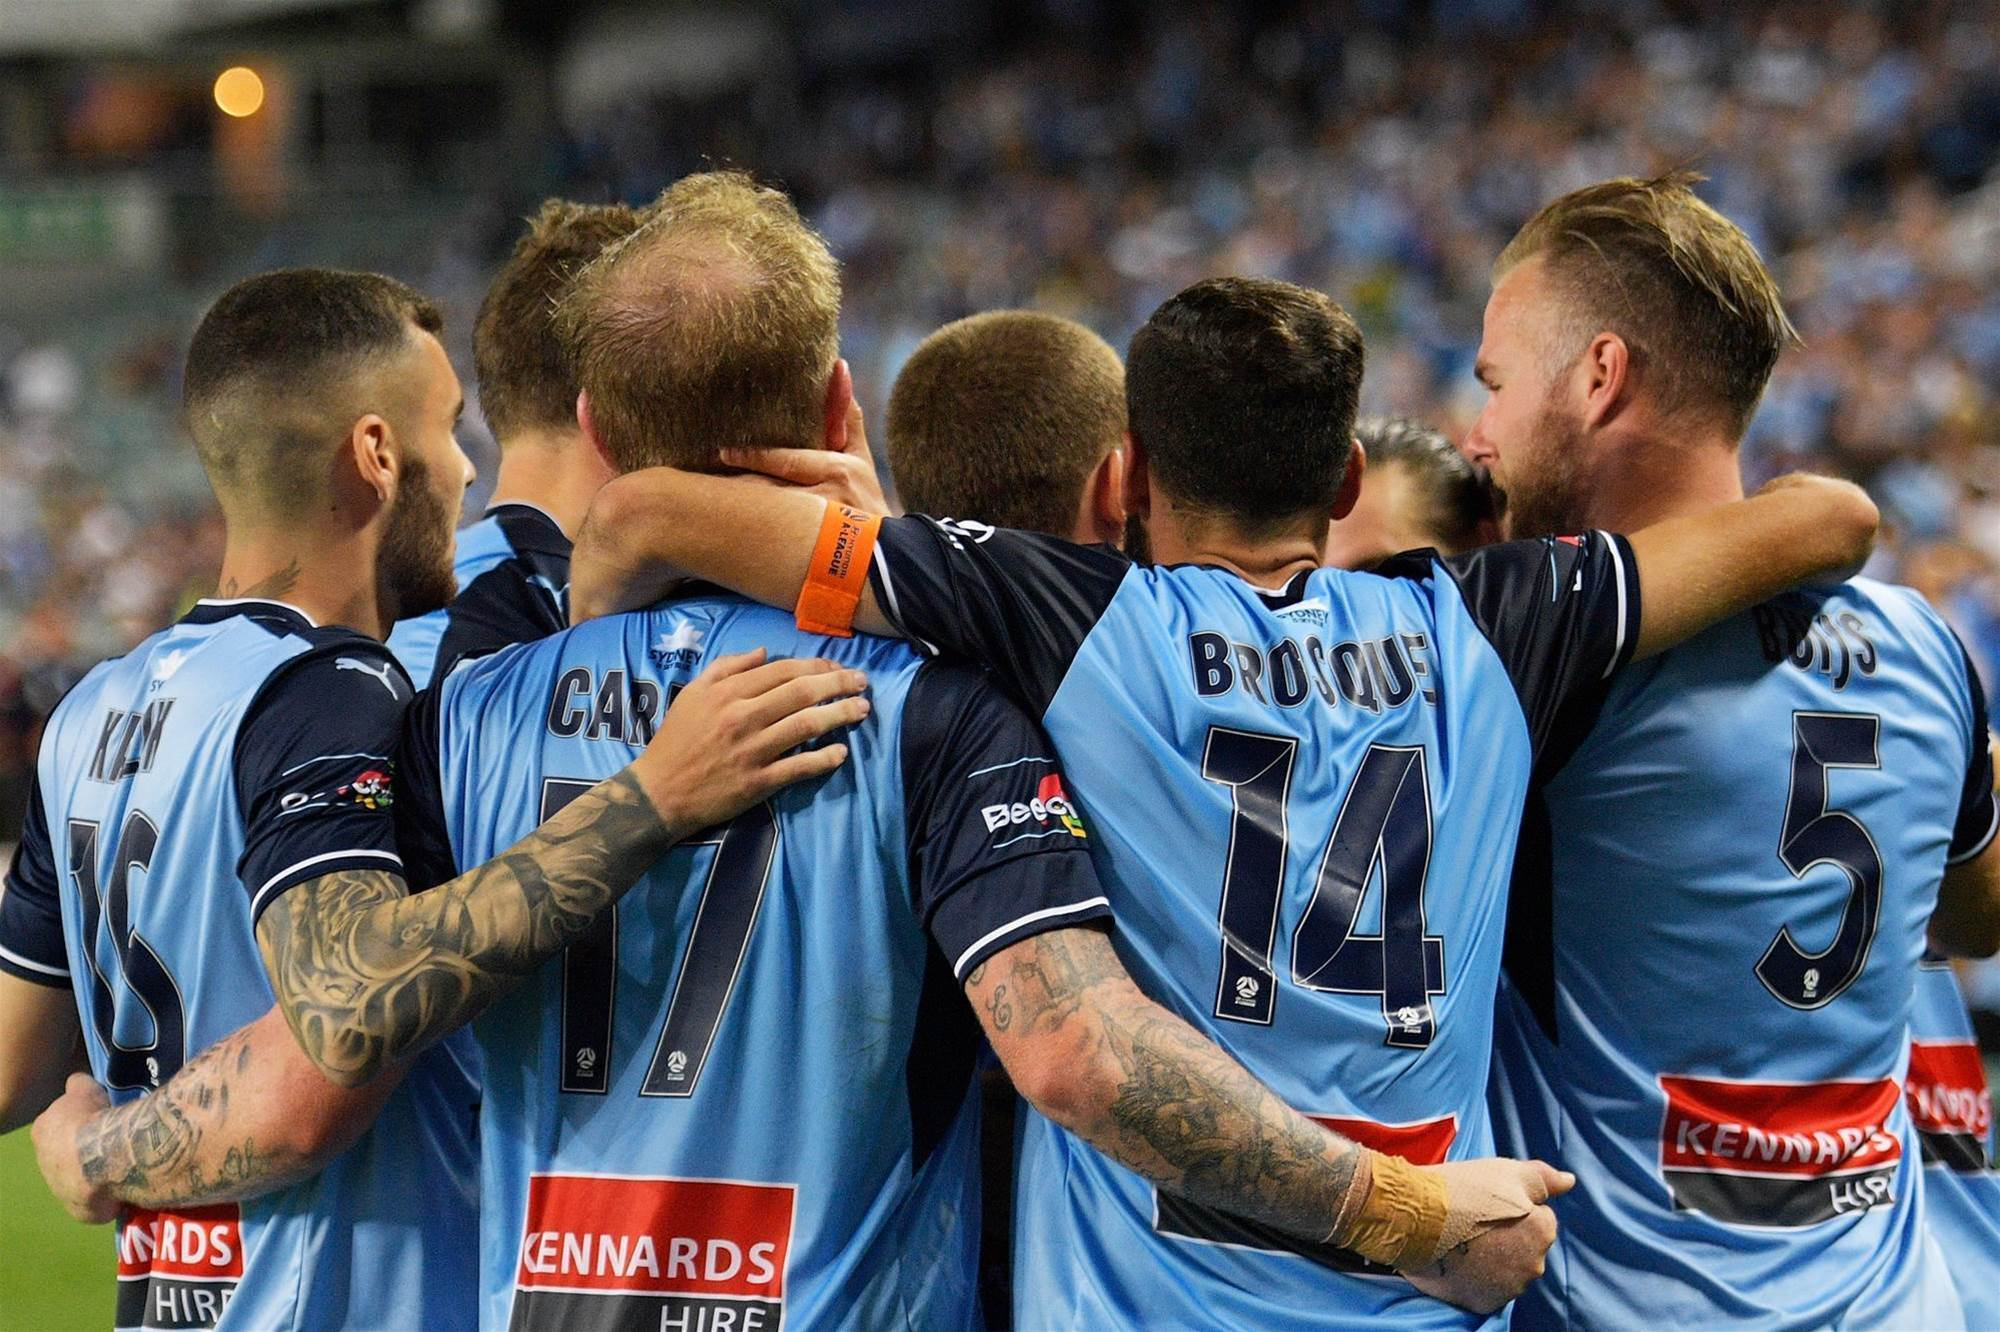 Sydney FC crowned NSW Team of the Year